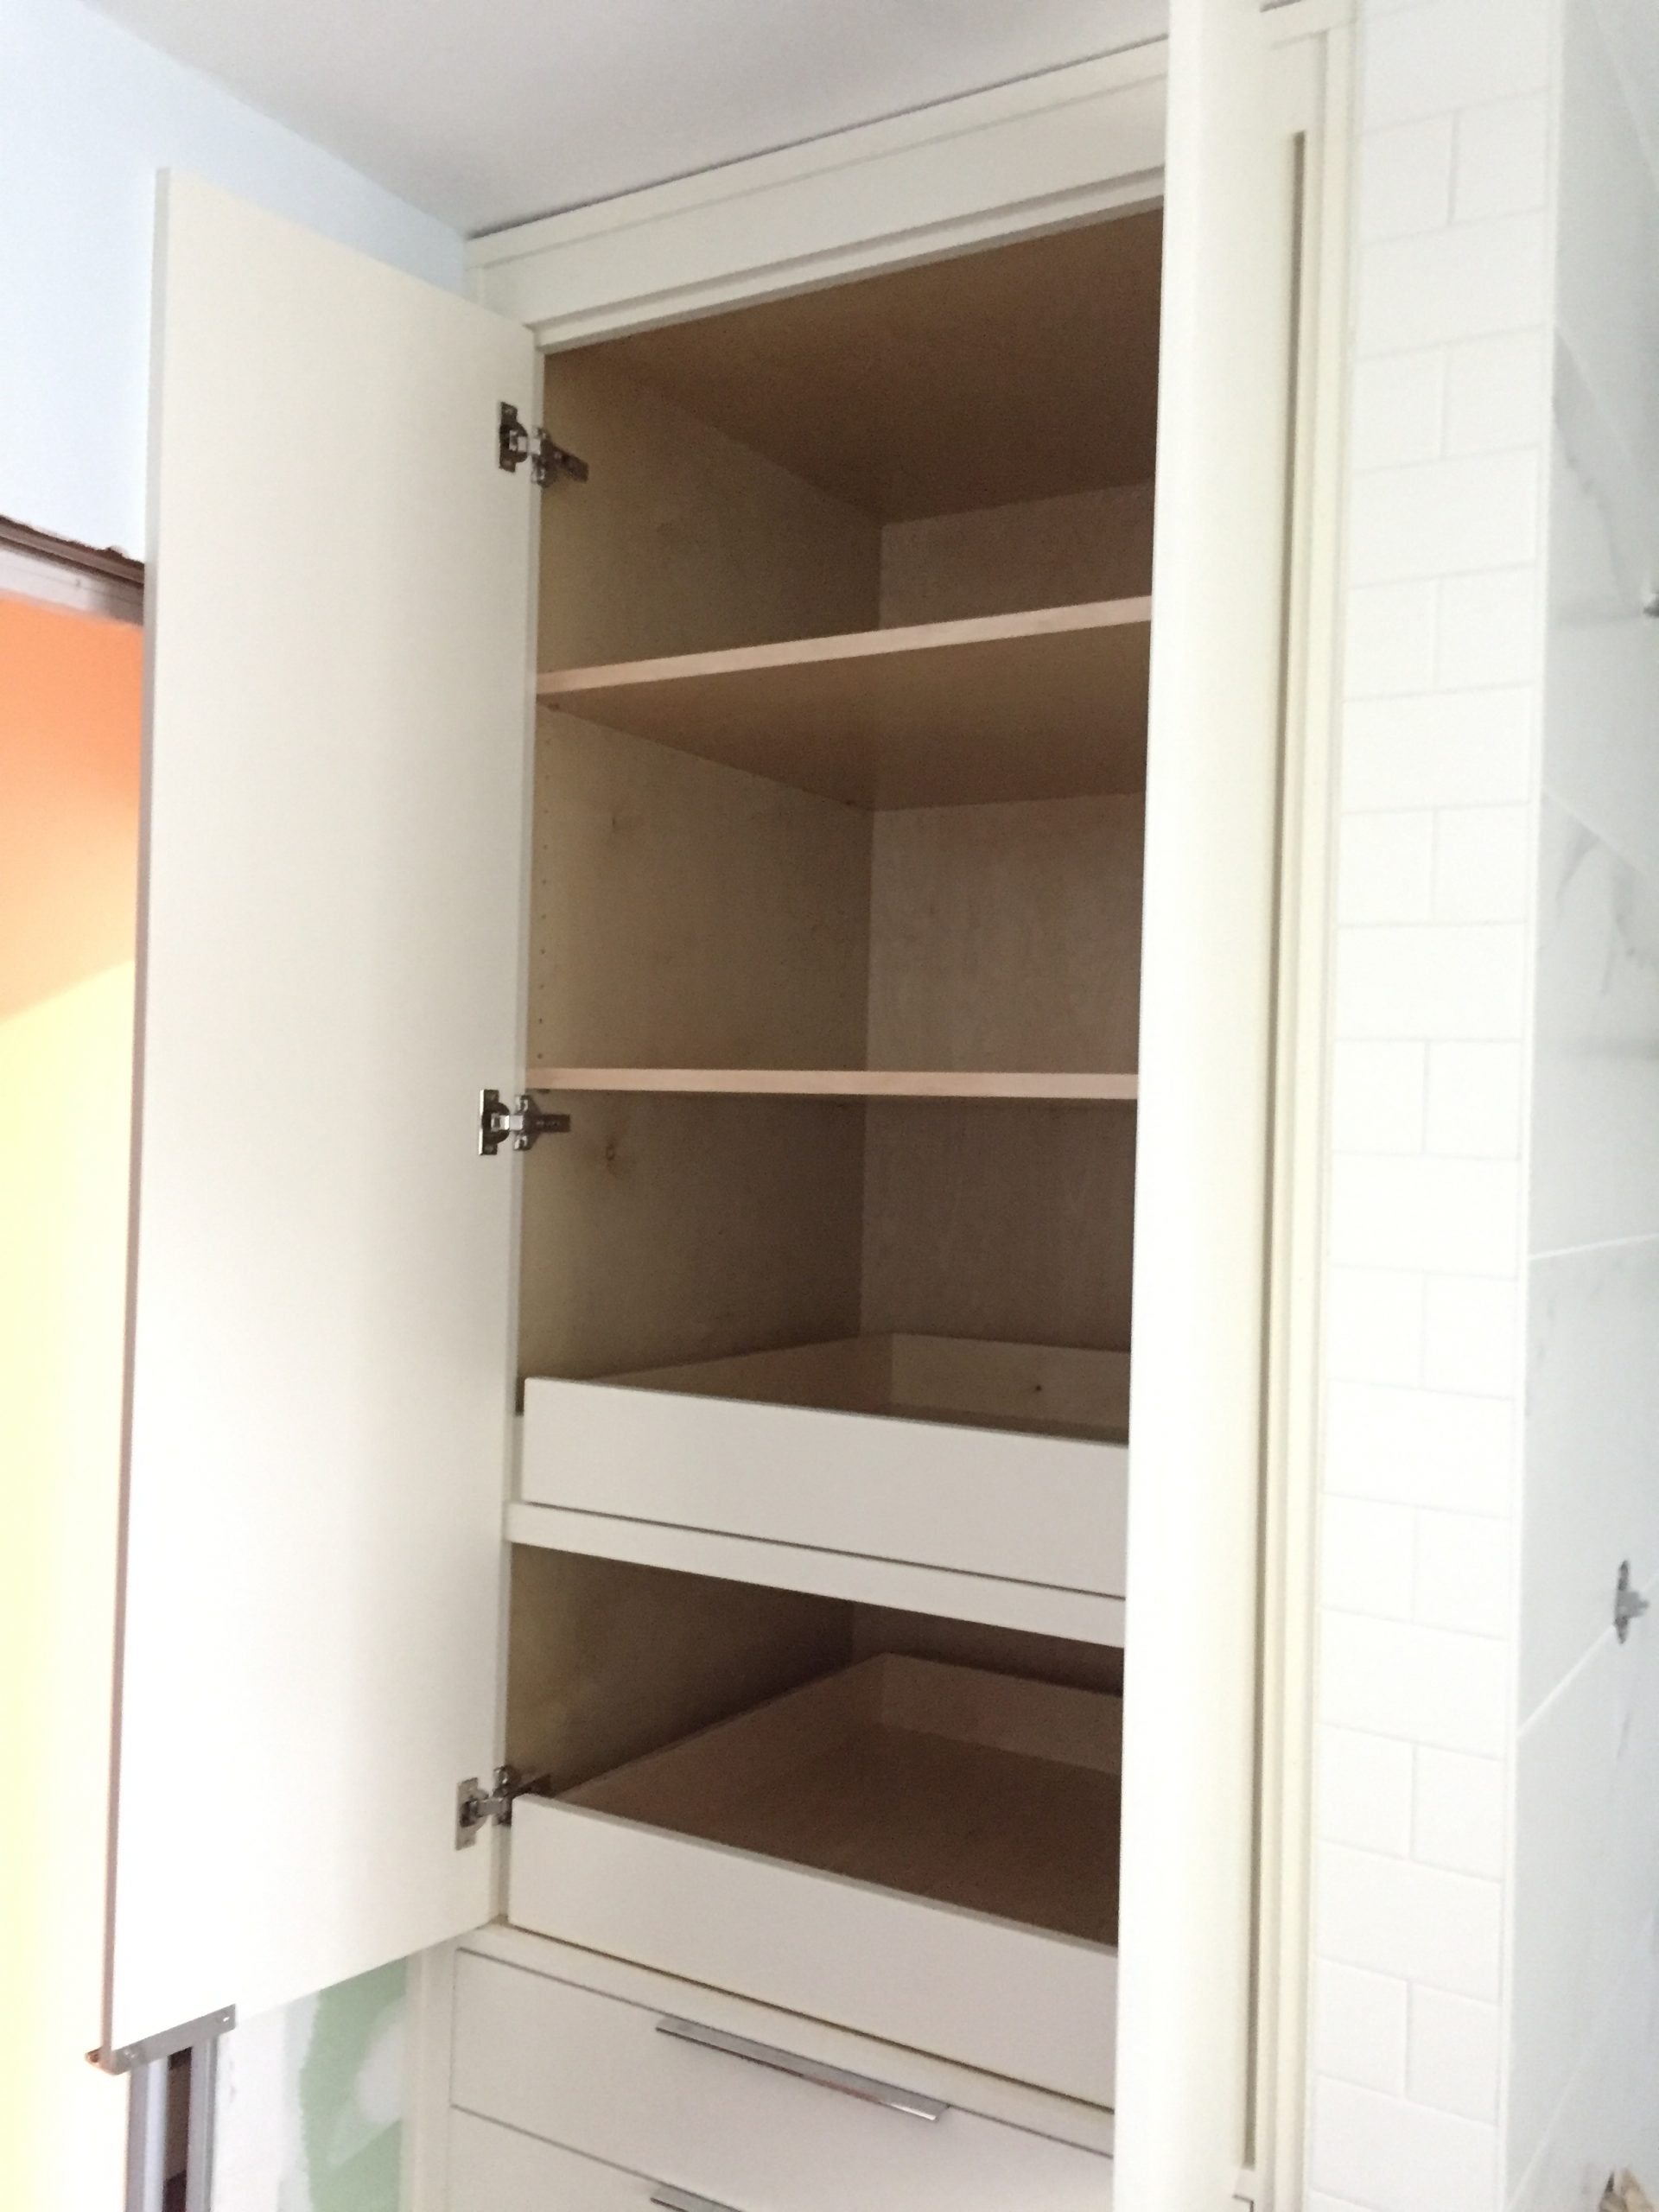 Photo of Quiet Closing Cabinets